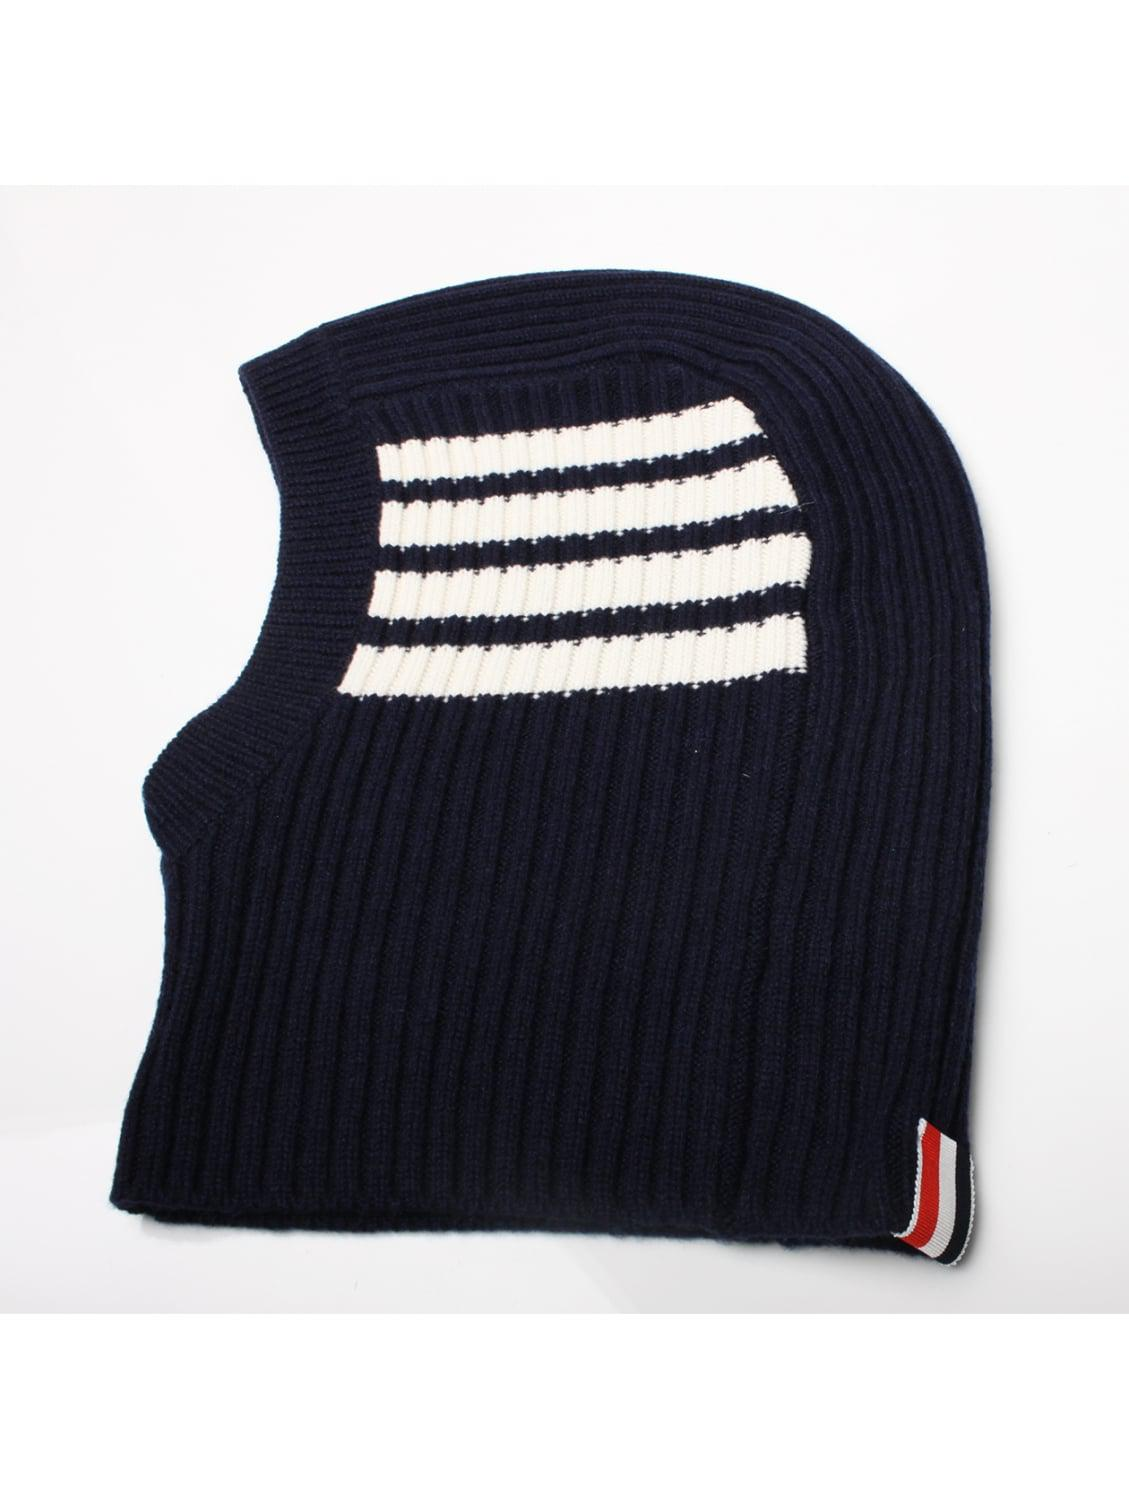 Thom Browne Bar Stripe Cashmere Balaclava Navy in Blue for Men - Lyst d505e798fed4